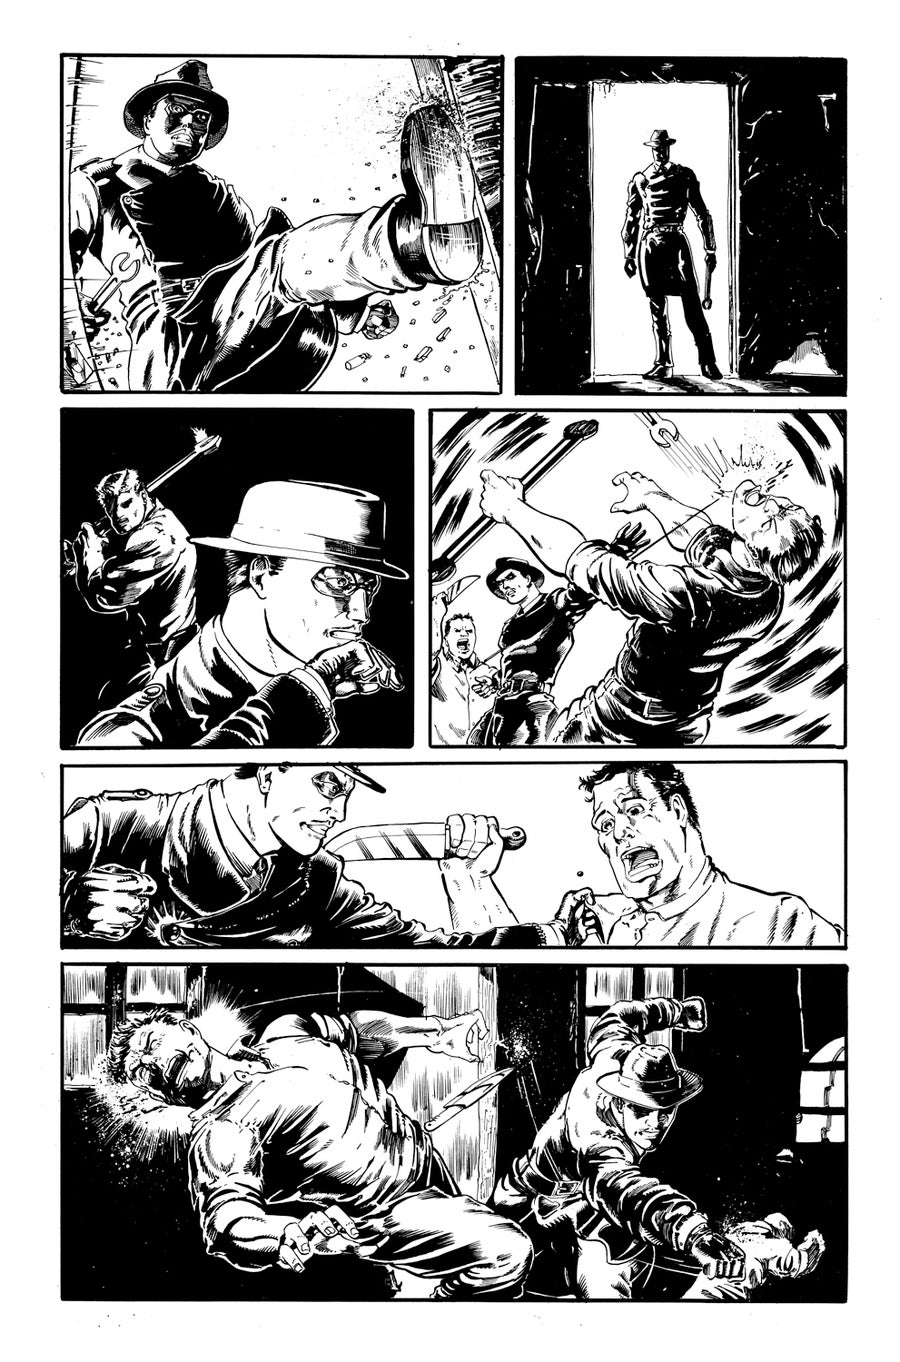 Image of Original Art - El Viudo ComicBook Page 04